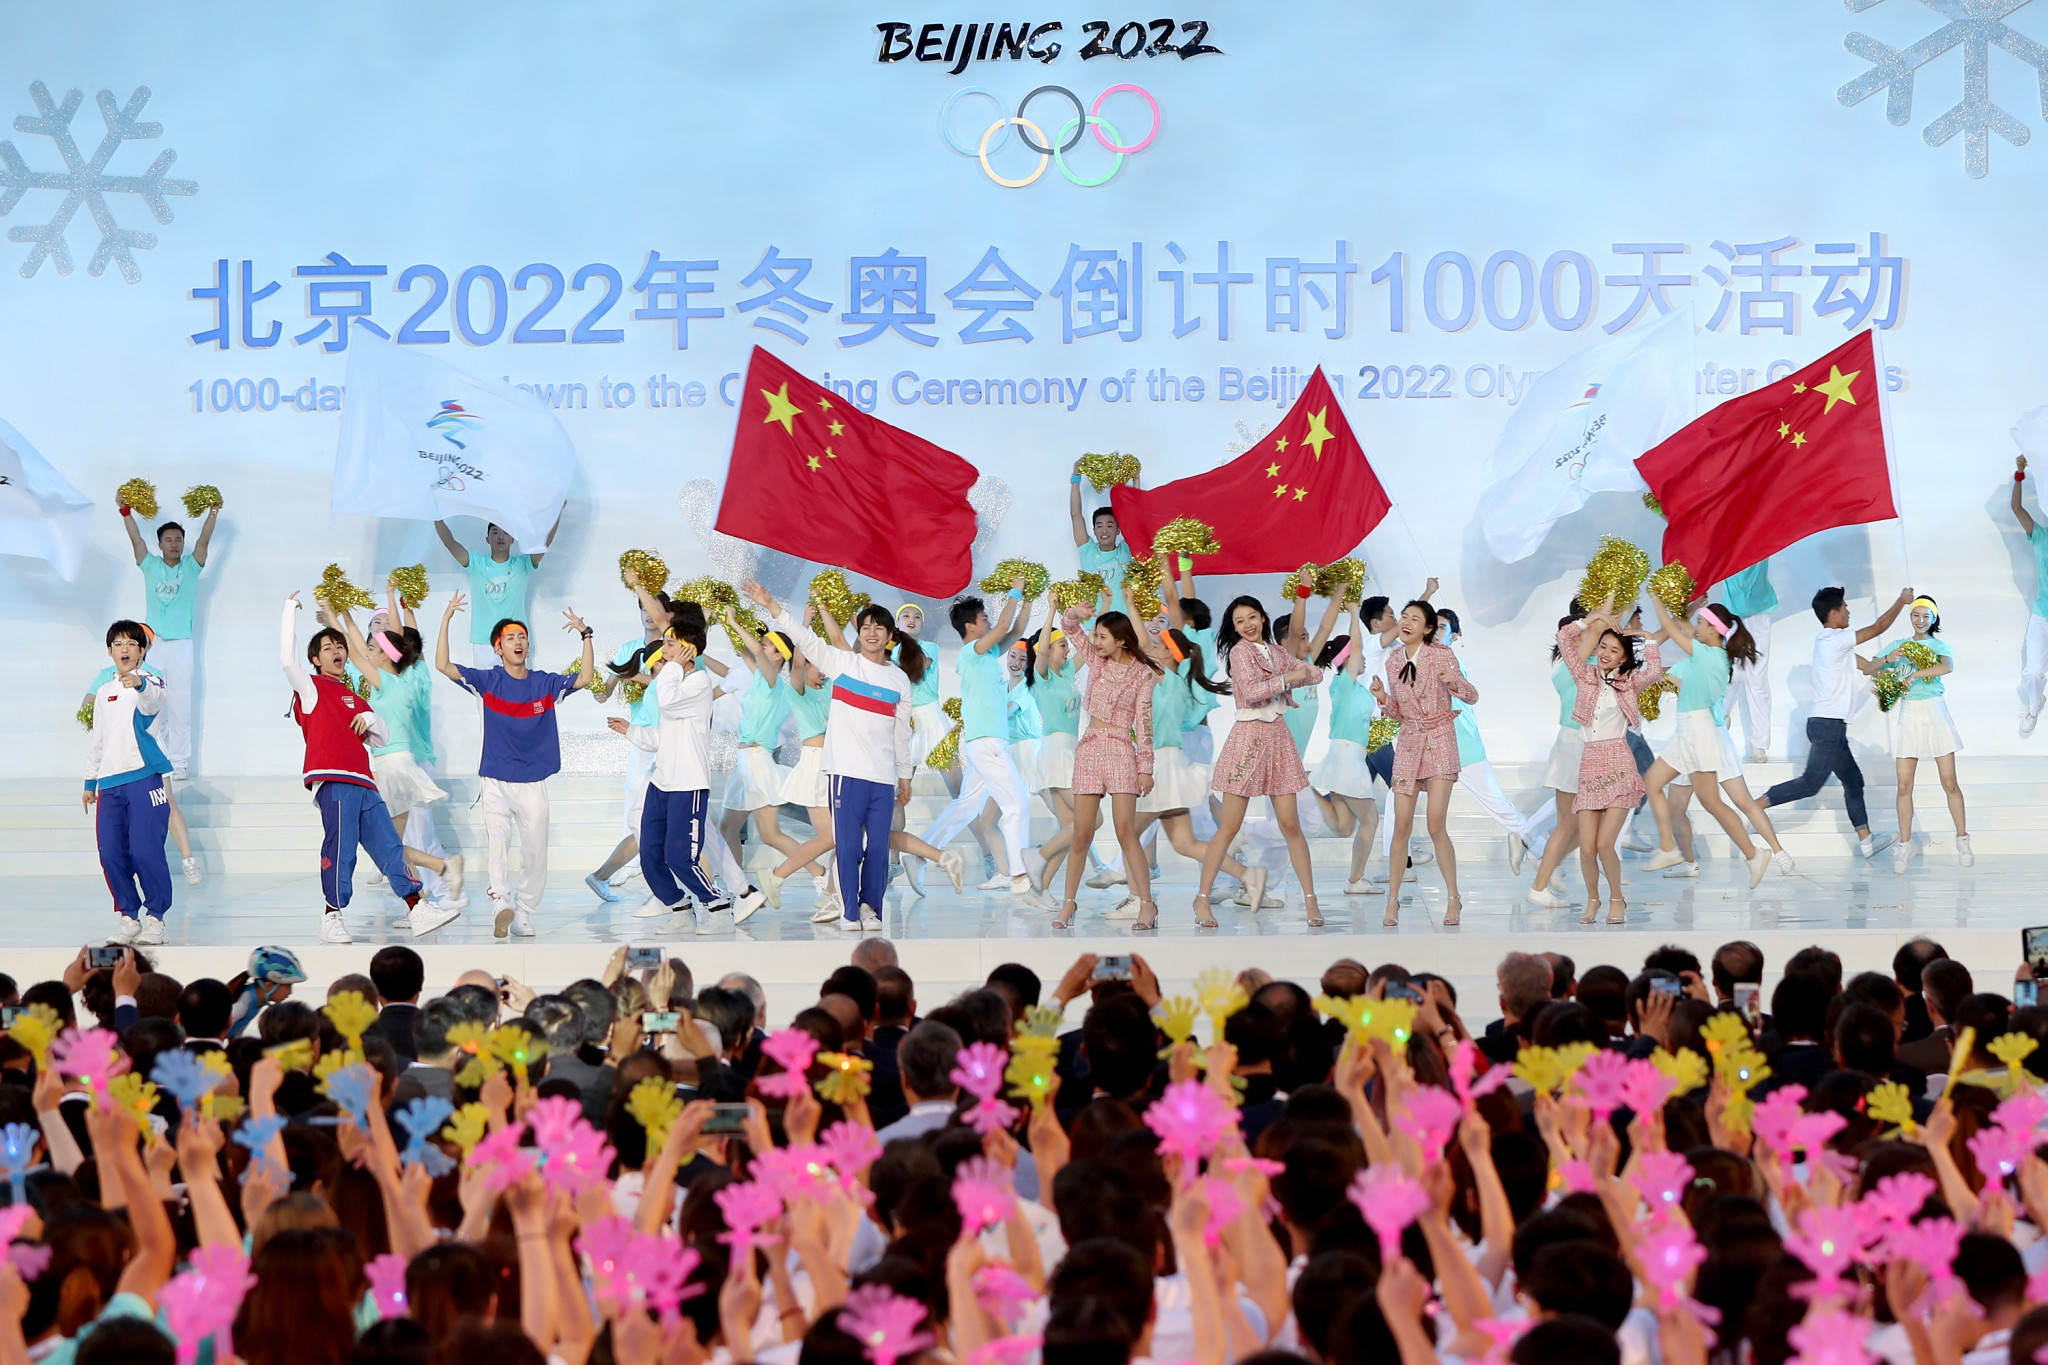 Artists perform during the 1,000-day countdown to the Opening Ceremony of the Beijing 2022 Winter Olympics ©Getty Images